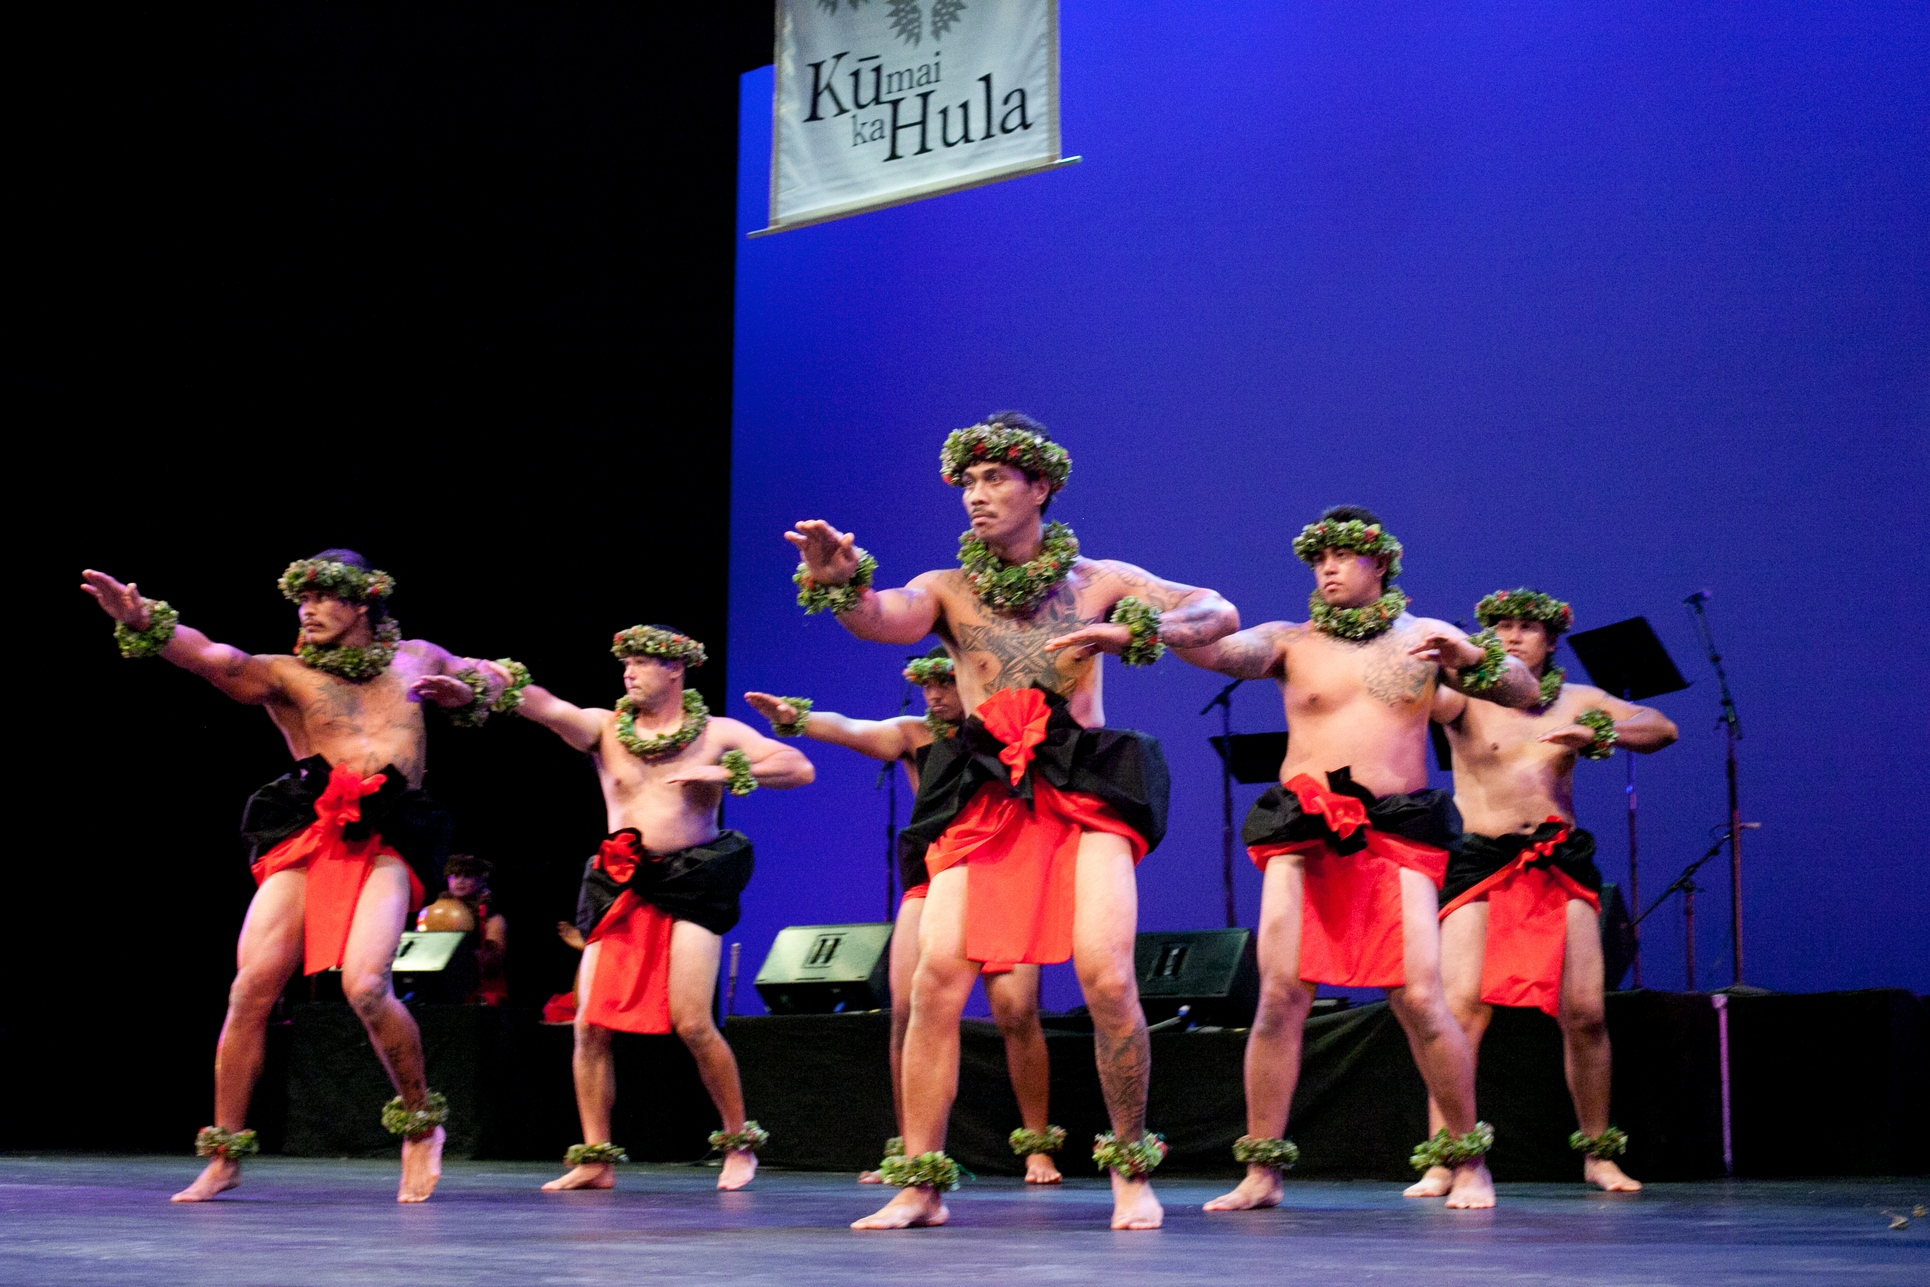 Ku Mai Ka Hula 2011 - Kane Kahiko, Halau I Kona Mau Lima, Kumu Hula Ualani Smith 